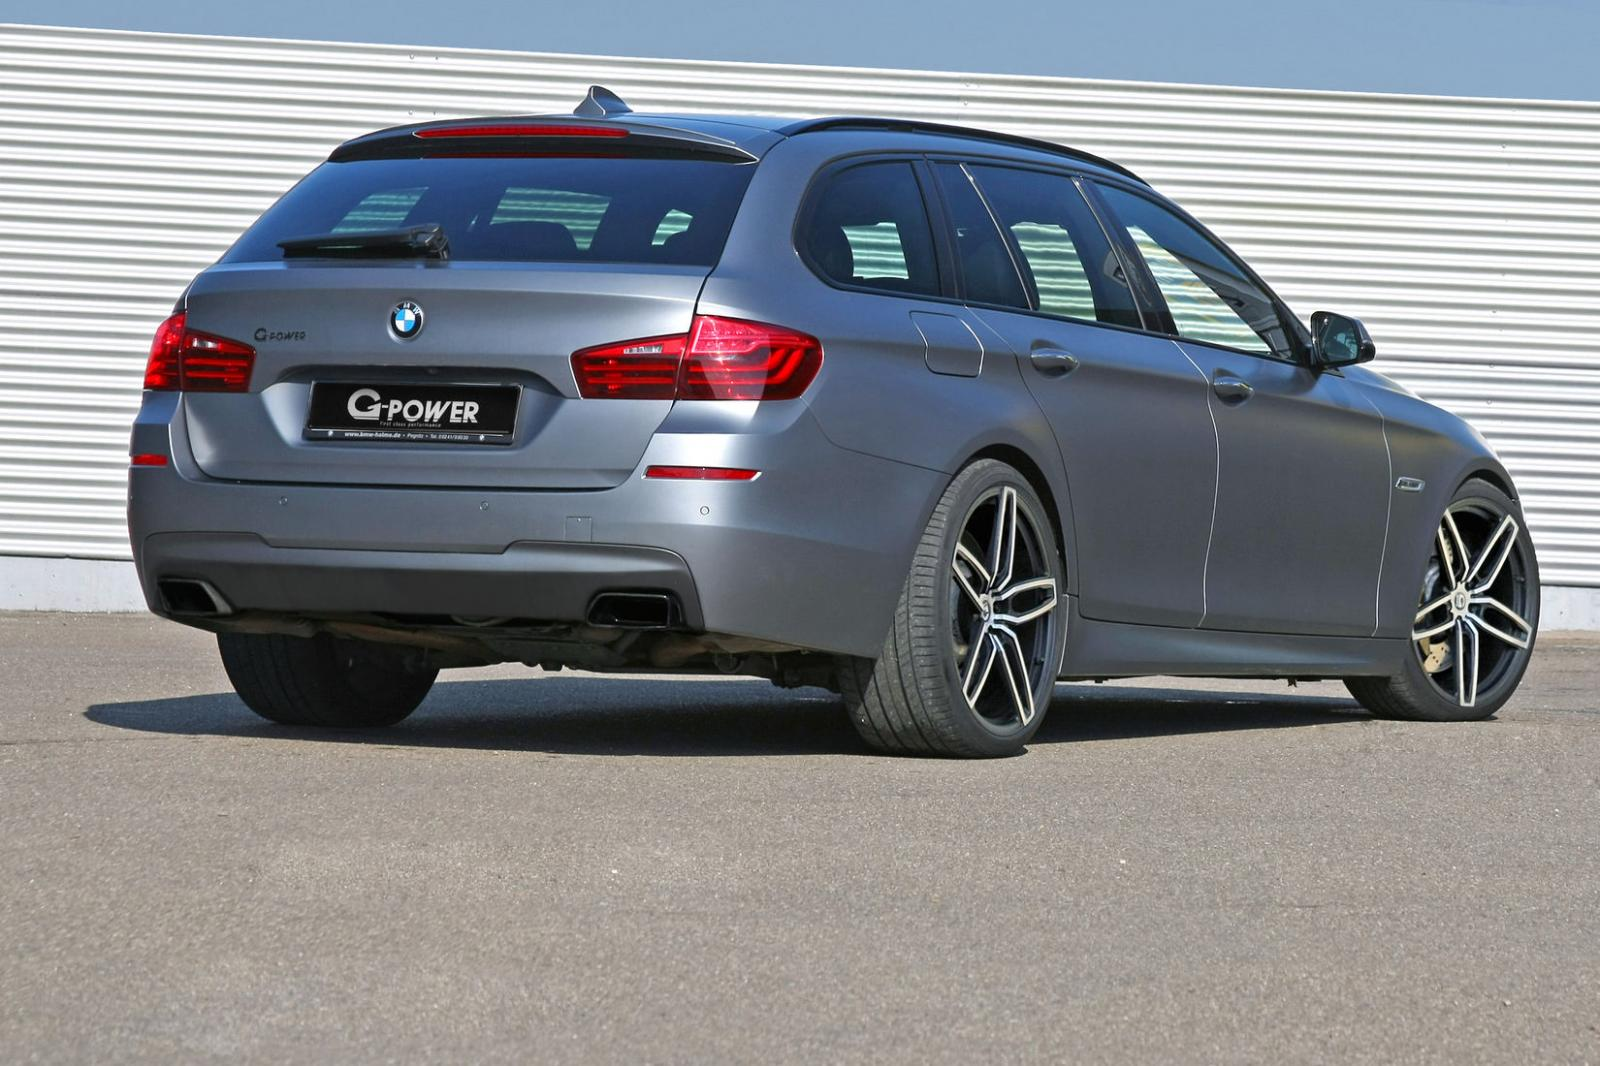 ... Fastest Diesel Touring BMW in the World, Theoretically - autoevolution